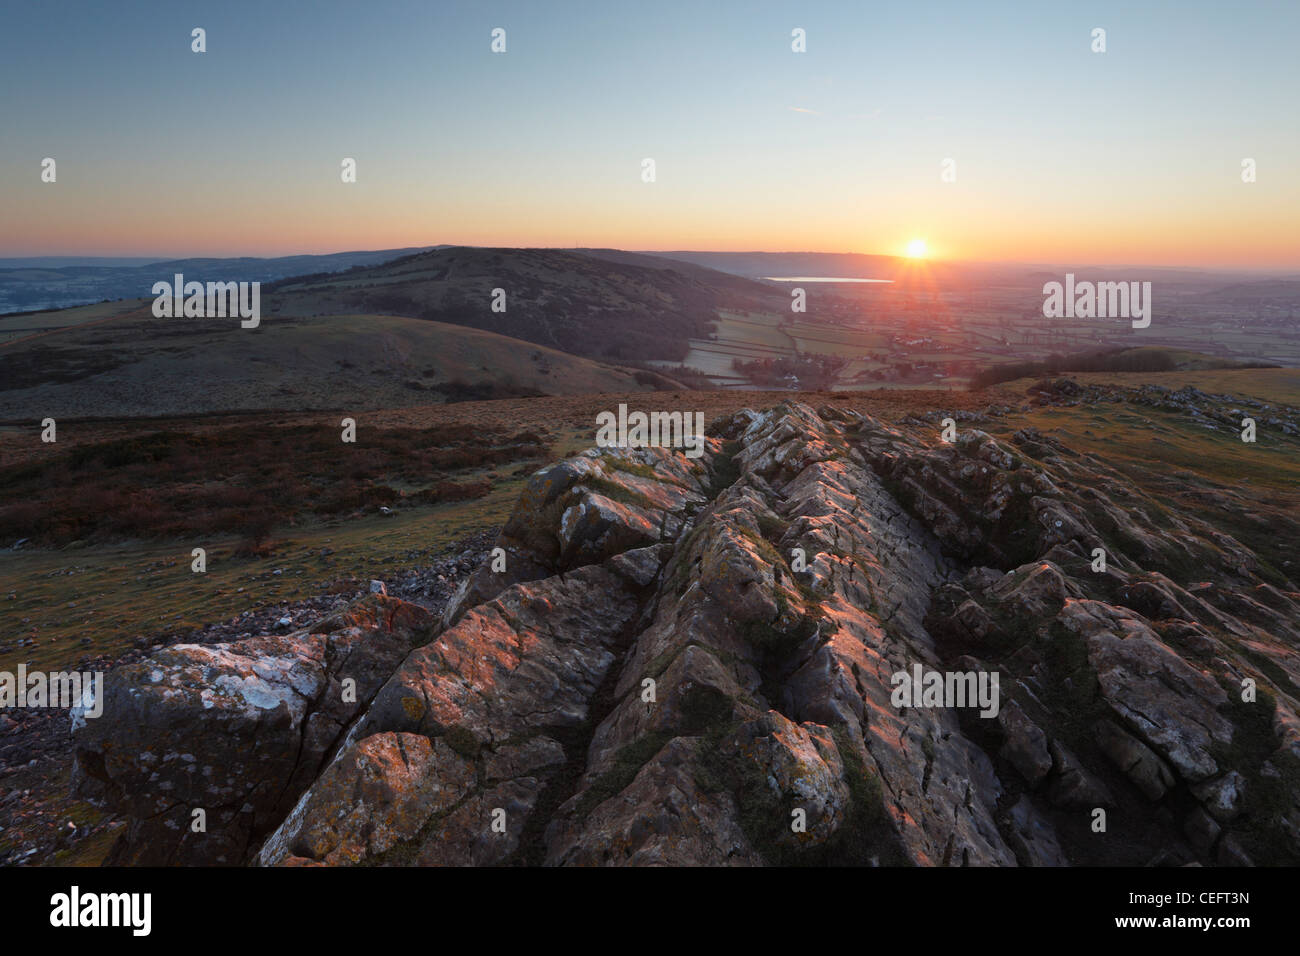 Le lever du soleil sur les collines de Mendip de Crook Peak. Le Somerset. L'Angleterre. UK. Photo Stock